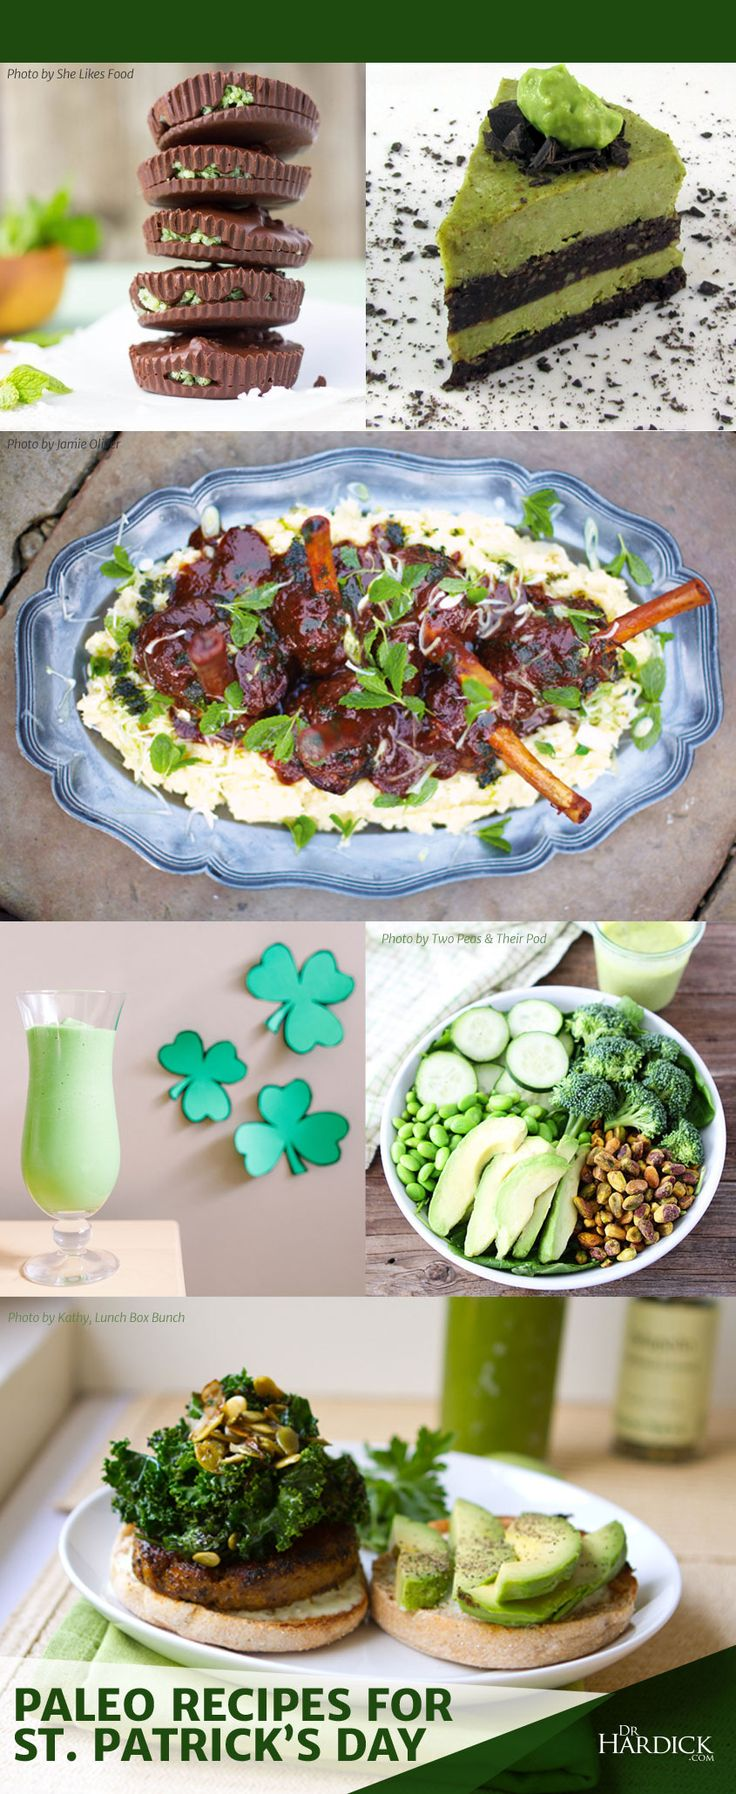 ICYMI...check out my summary of paleo recipes for healthy Irish dishes such as corned beef, cabbage, soda bread, colcannon, shepherd's (cottage) pie, and of course, delicious desserts!